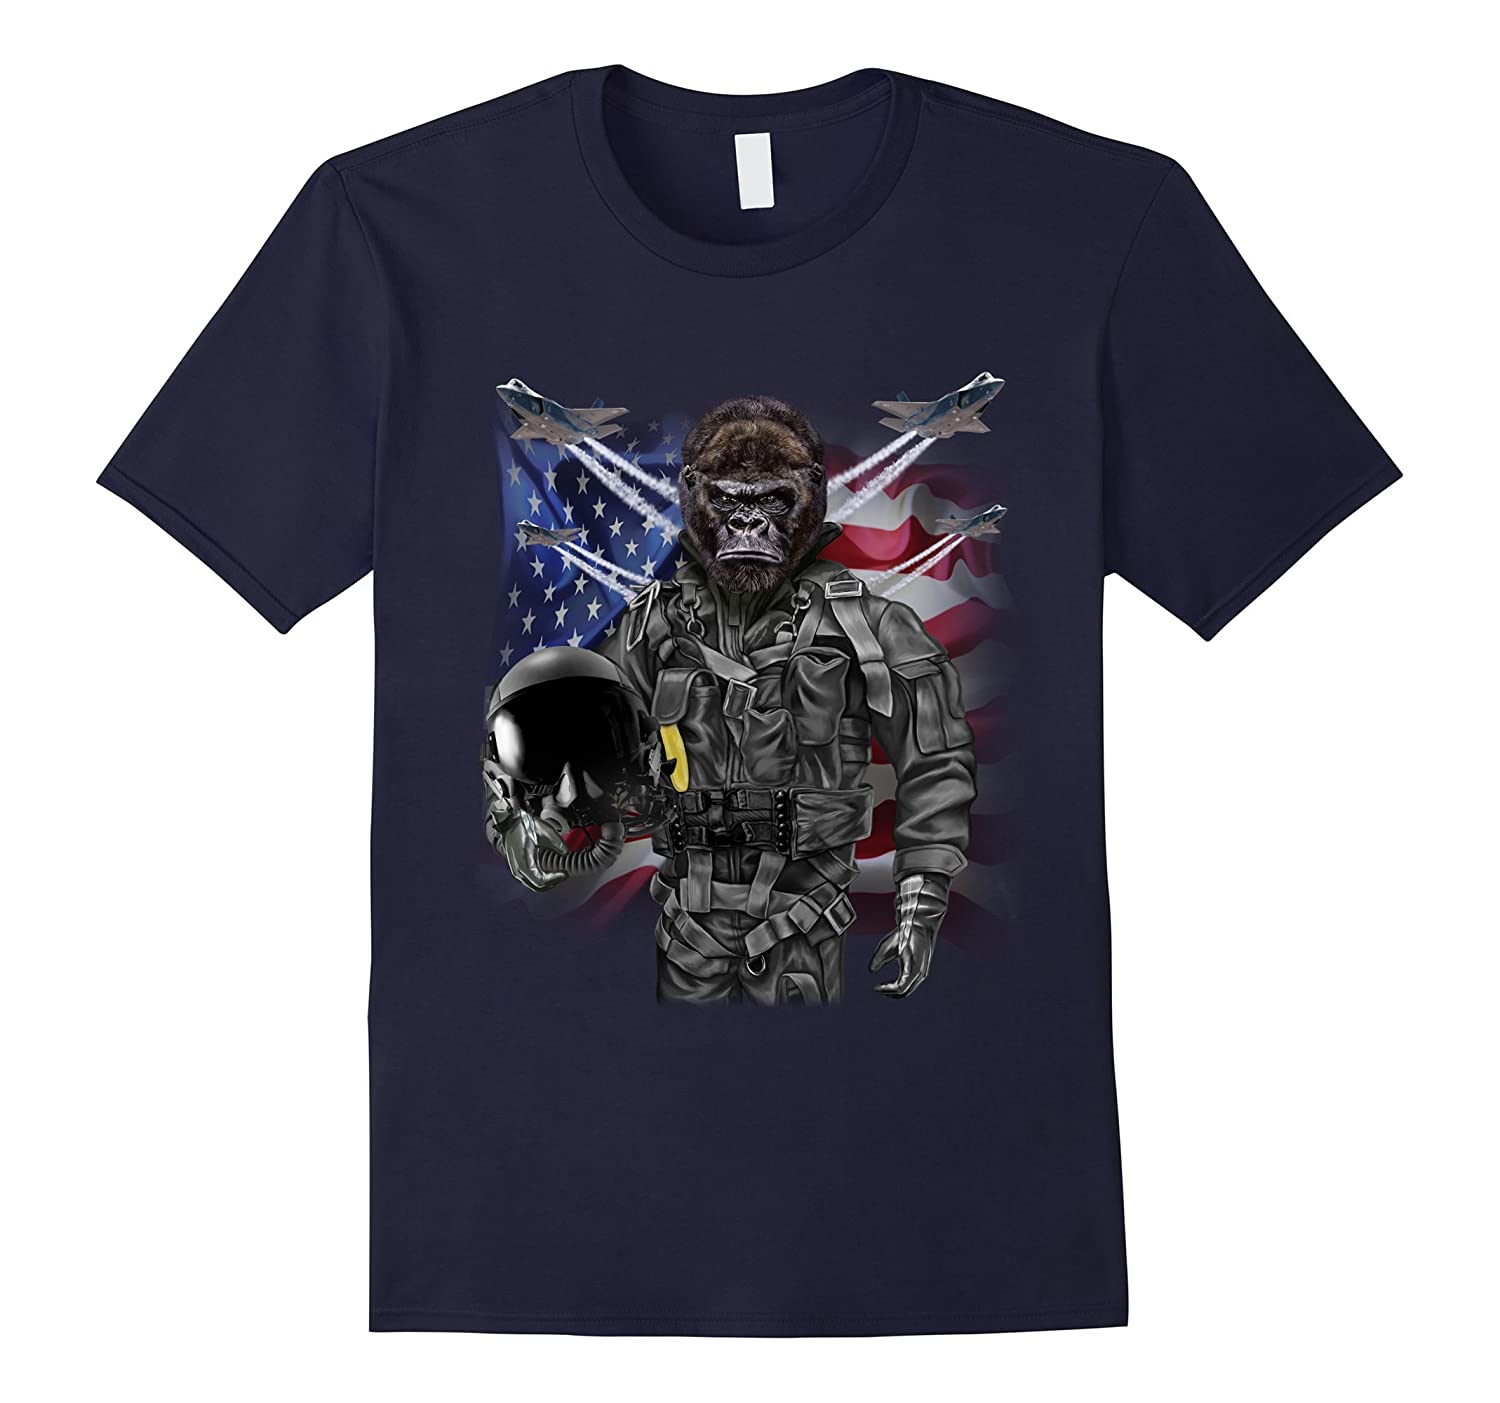 T-Shirt, Gorilla as Fighter Jet Pilot, USA America-T-Shirt